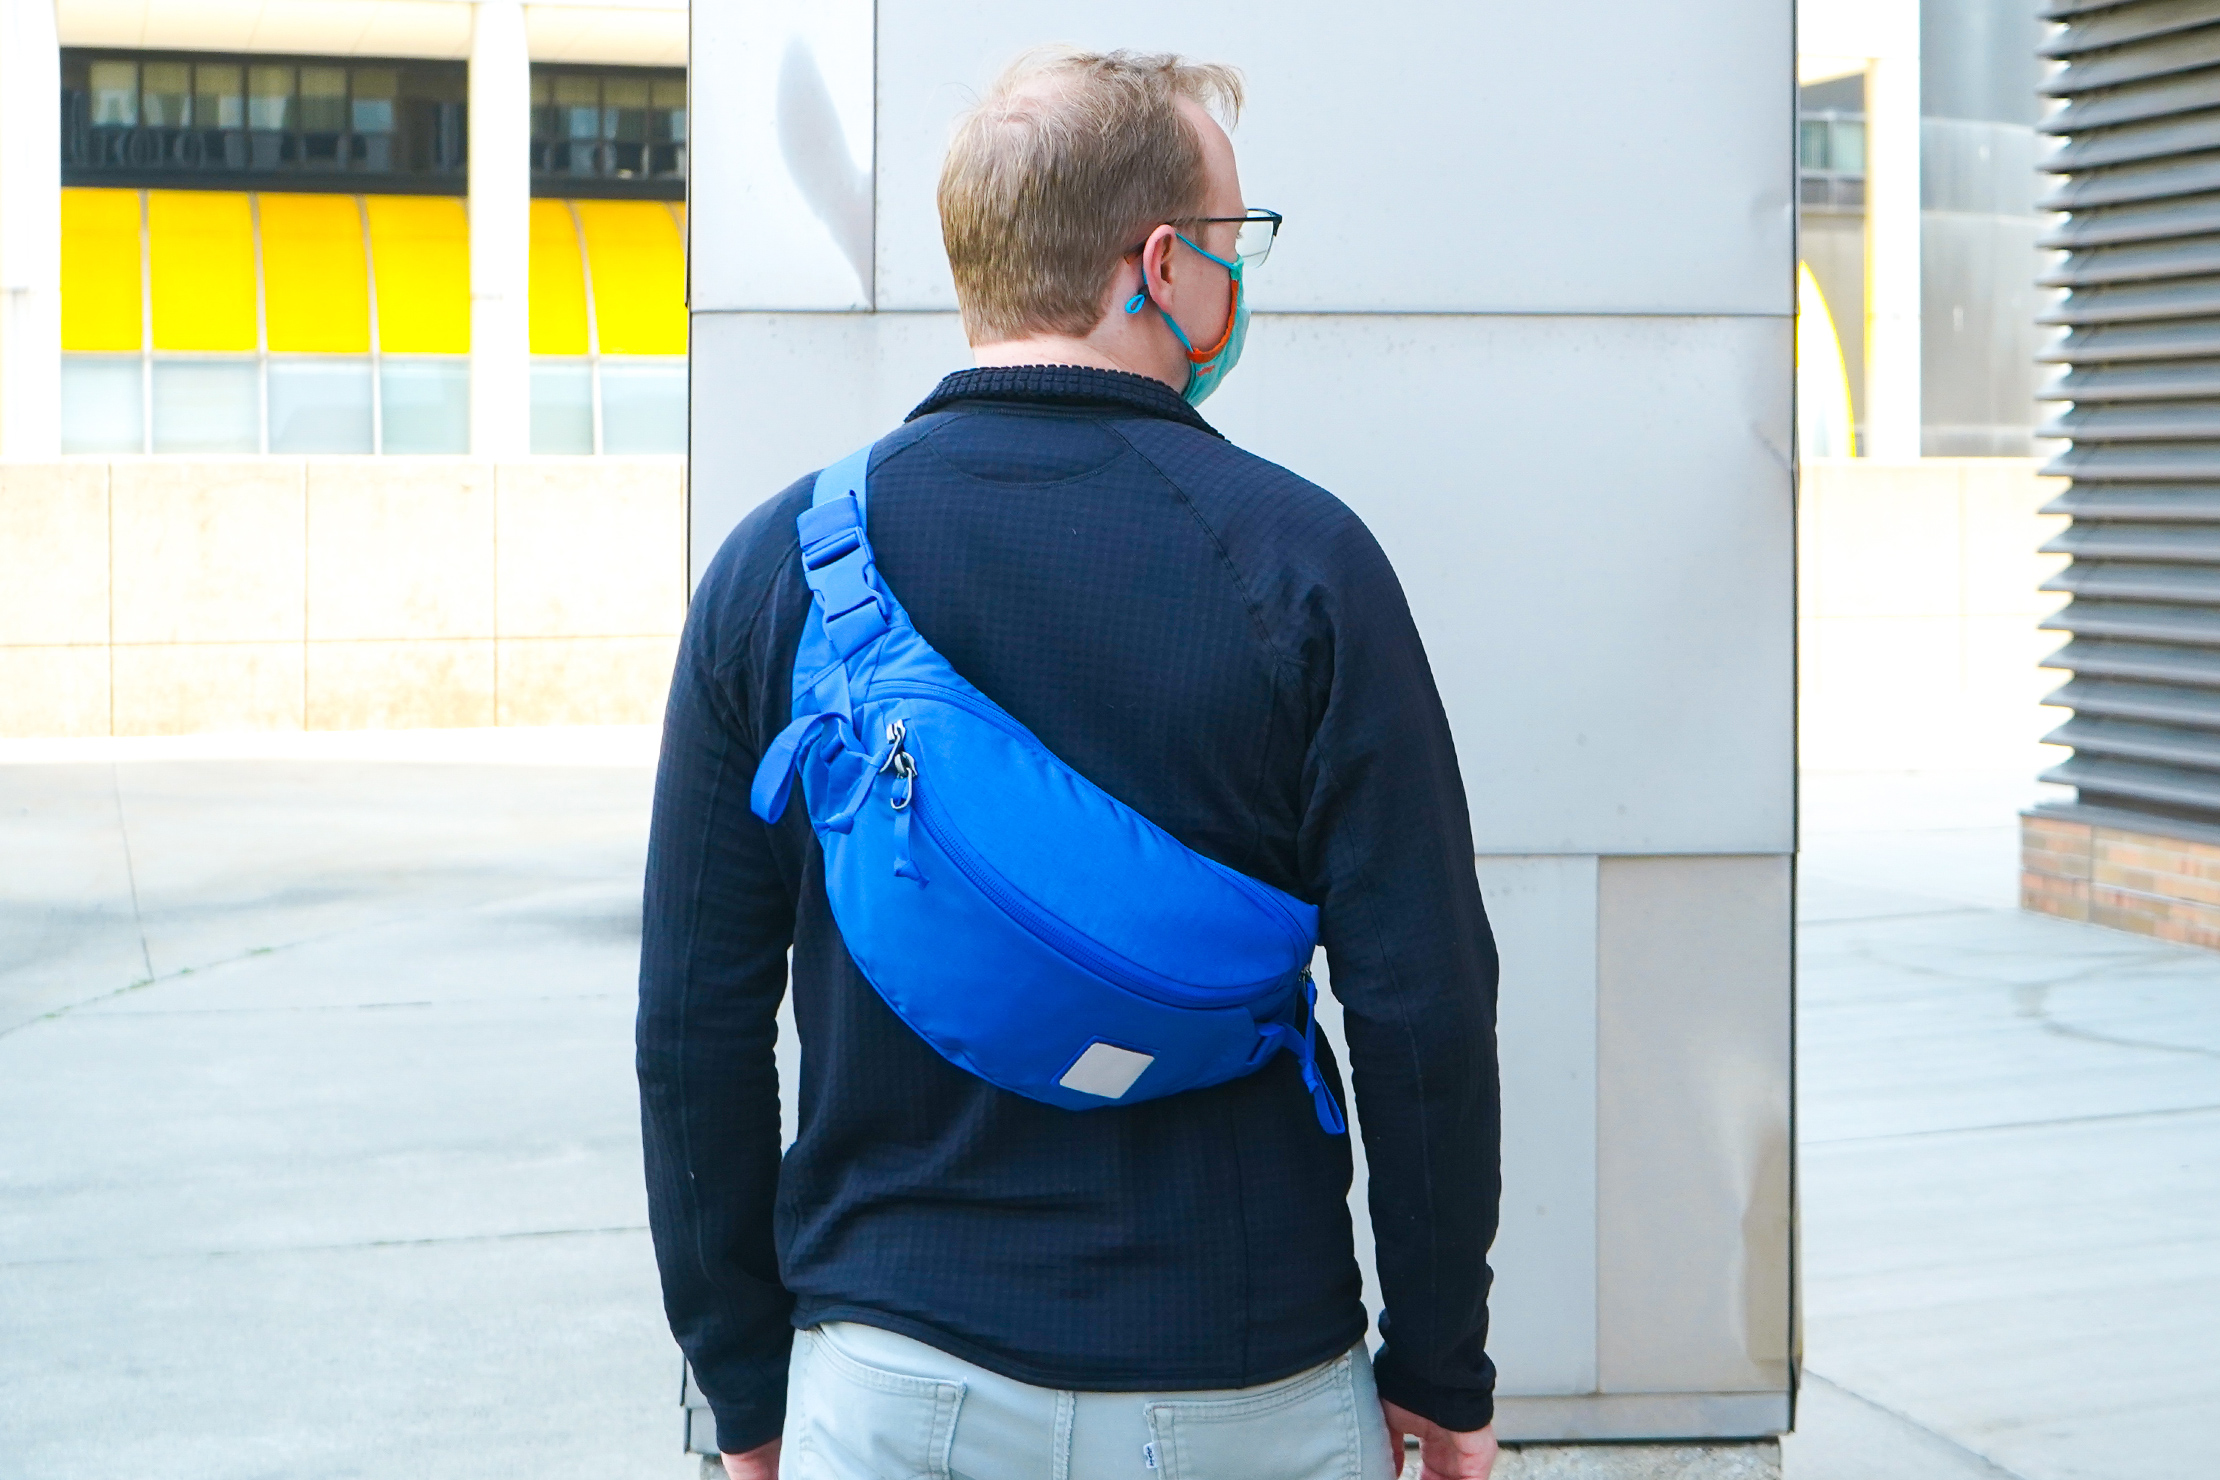 EVERGOODS Mountain Hip Pack 3.5L | Taking the waist pack around town